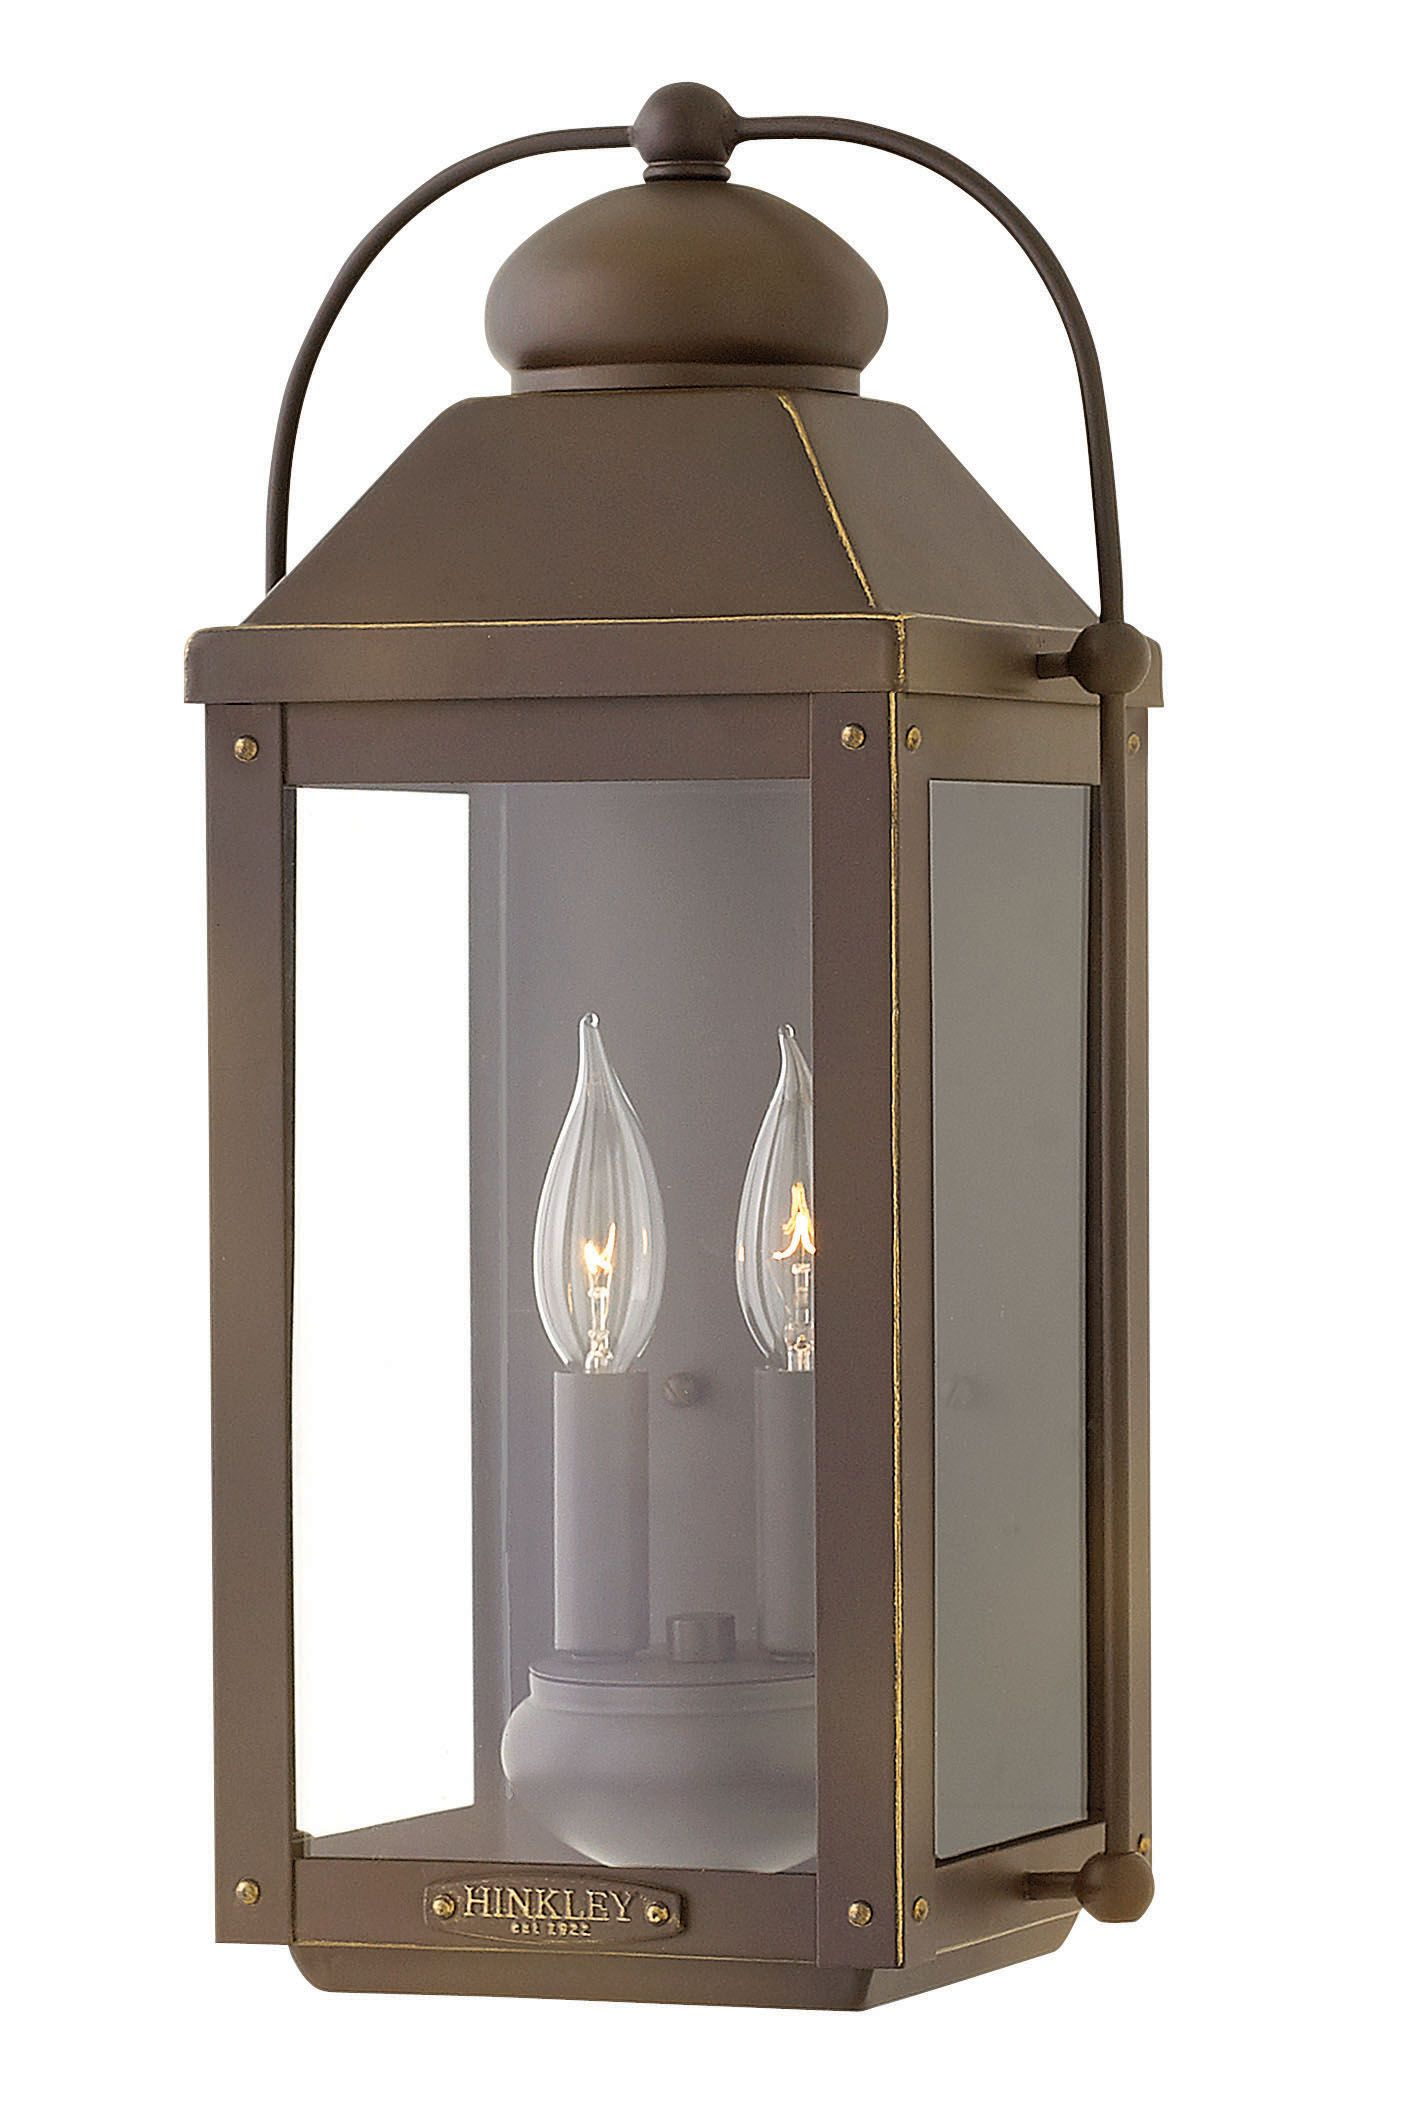 Two Light Wall Mount Anchorage is an early American lantern design crafted of solid aluminum to  sc 1 st  Pinterest & Two Light Wall Mount Anchorage is an early American lantern design ... azcodes.com